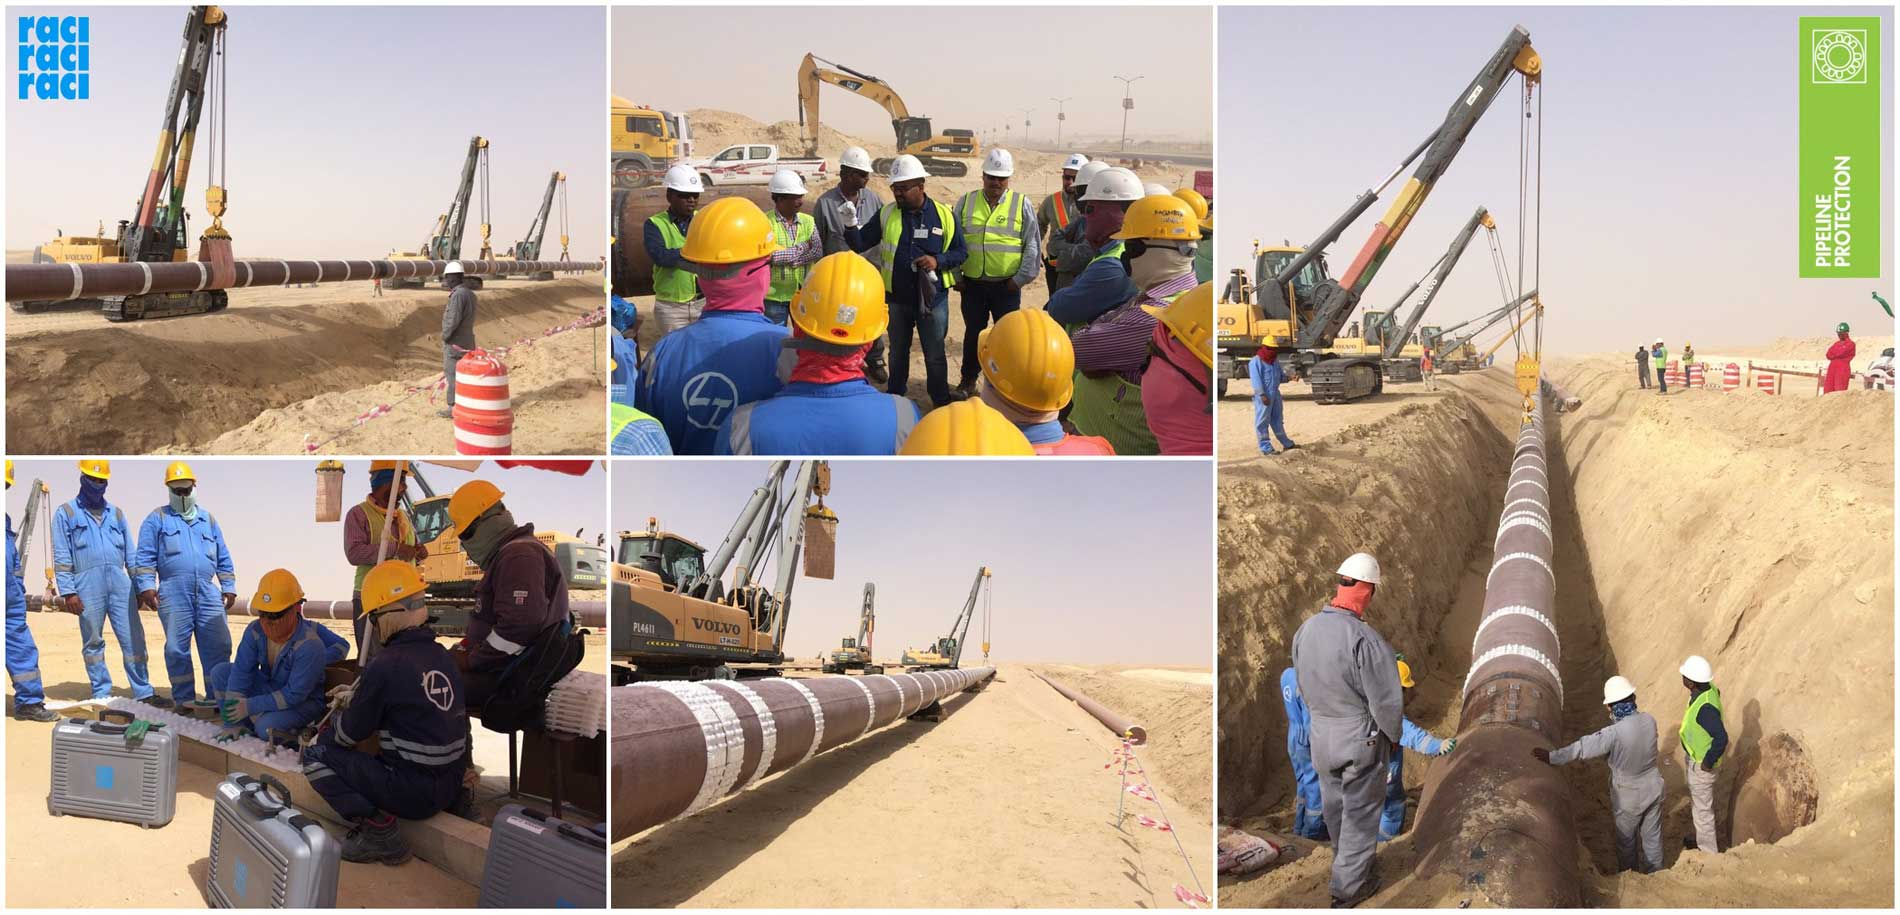 Once again Raci has been selected as partner to complete this Saudi Aramco big project. The installation of our HDPE Spacers CFD25 and CDL25 was supervised by us in the presence of Saudi Aramco Officials.